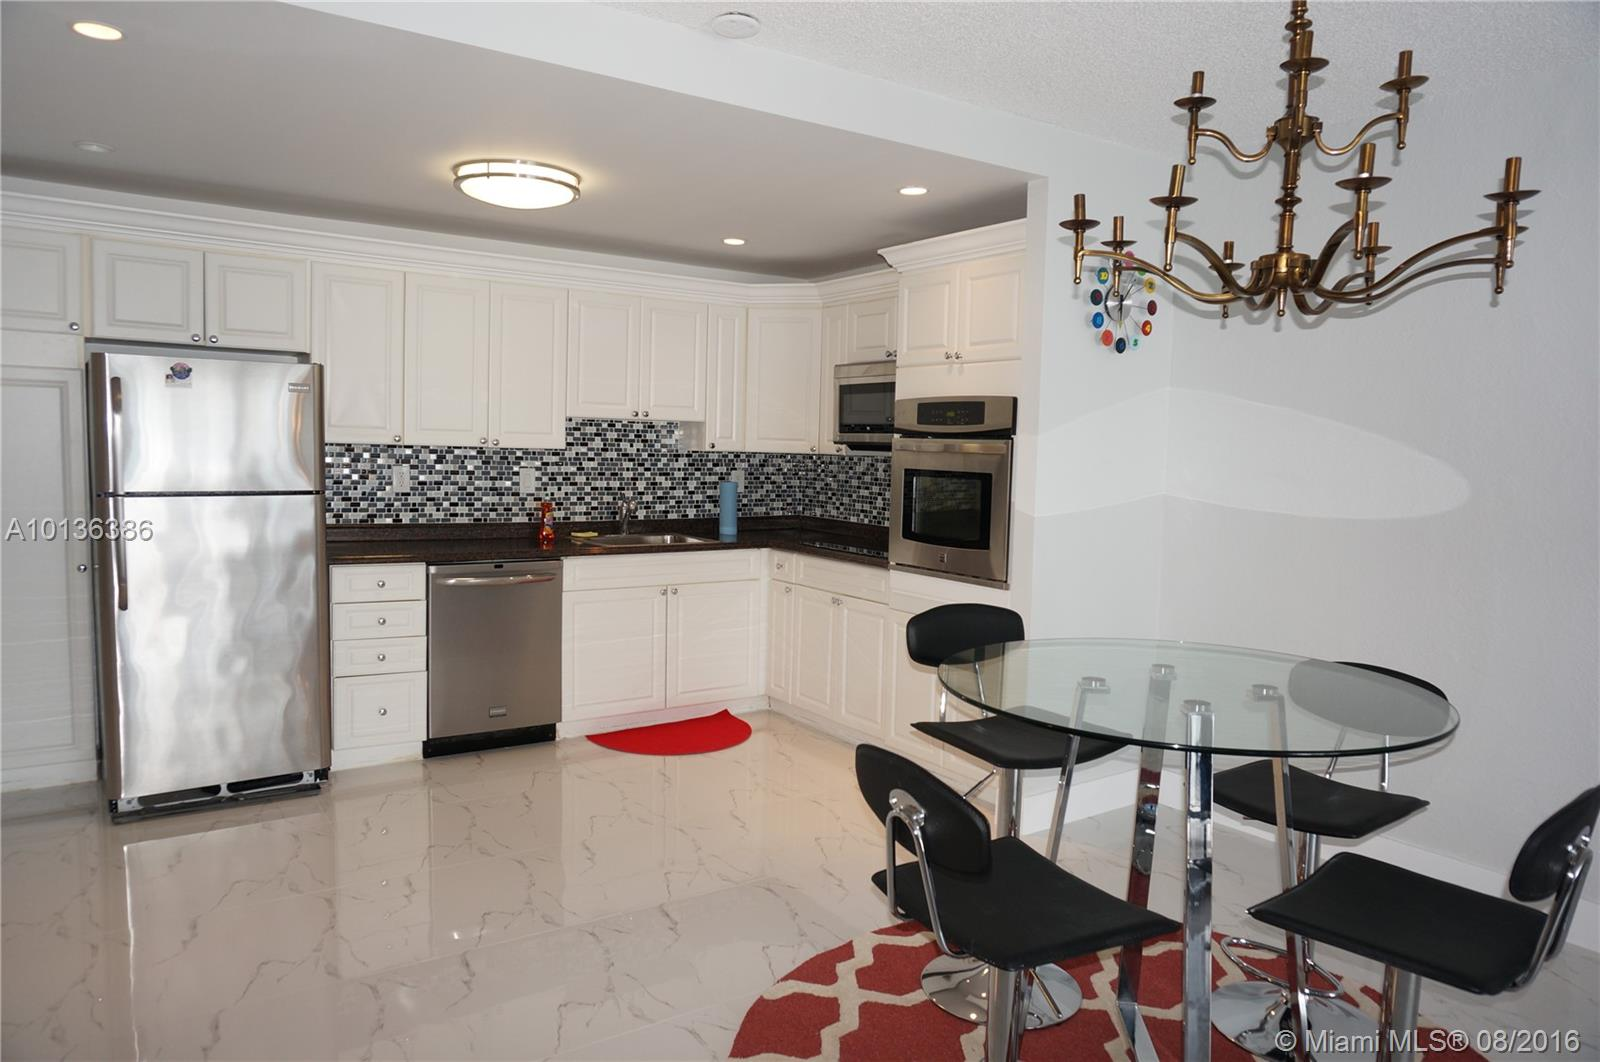 19370 Collins Av Seasonal # 1417, Sunny Isles Beach FL 33160 - Photo 2